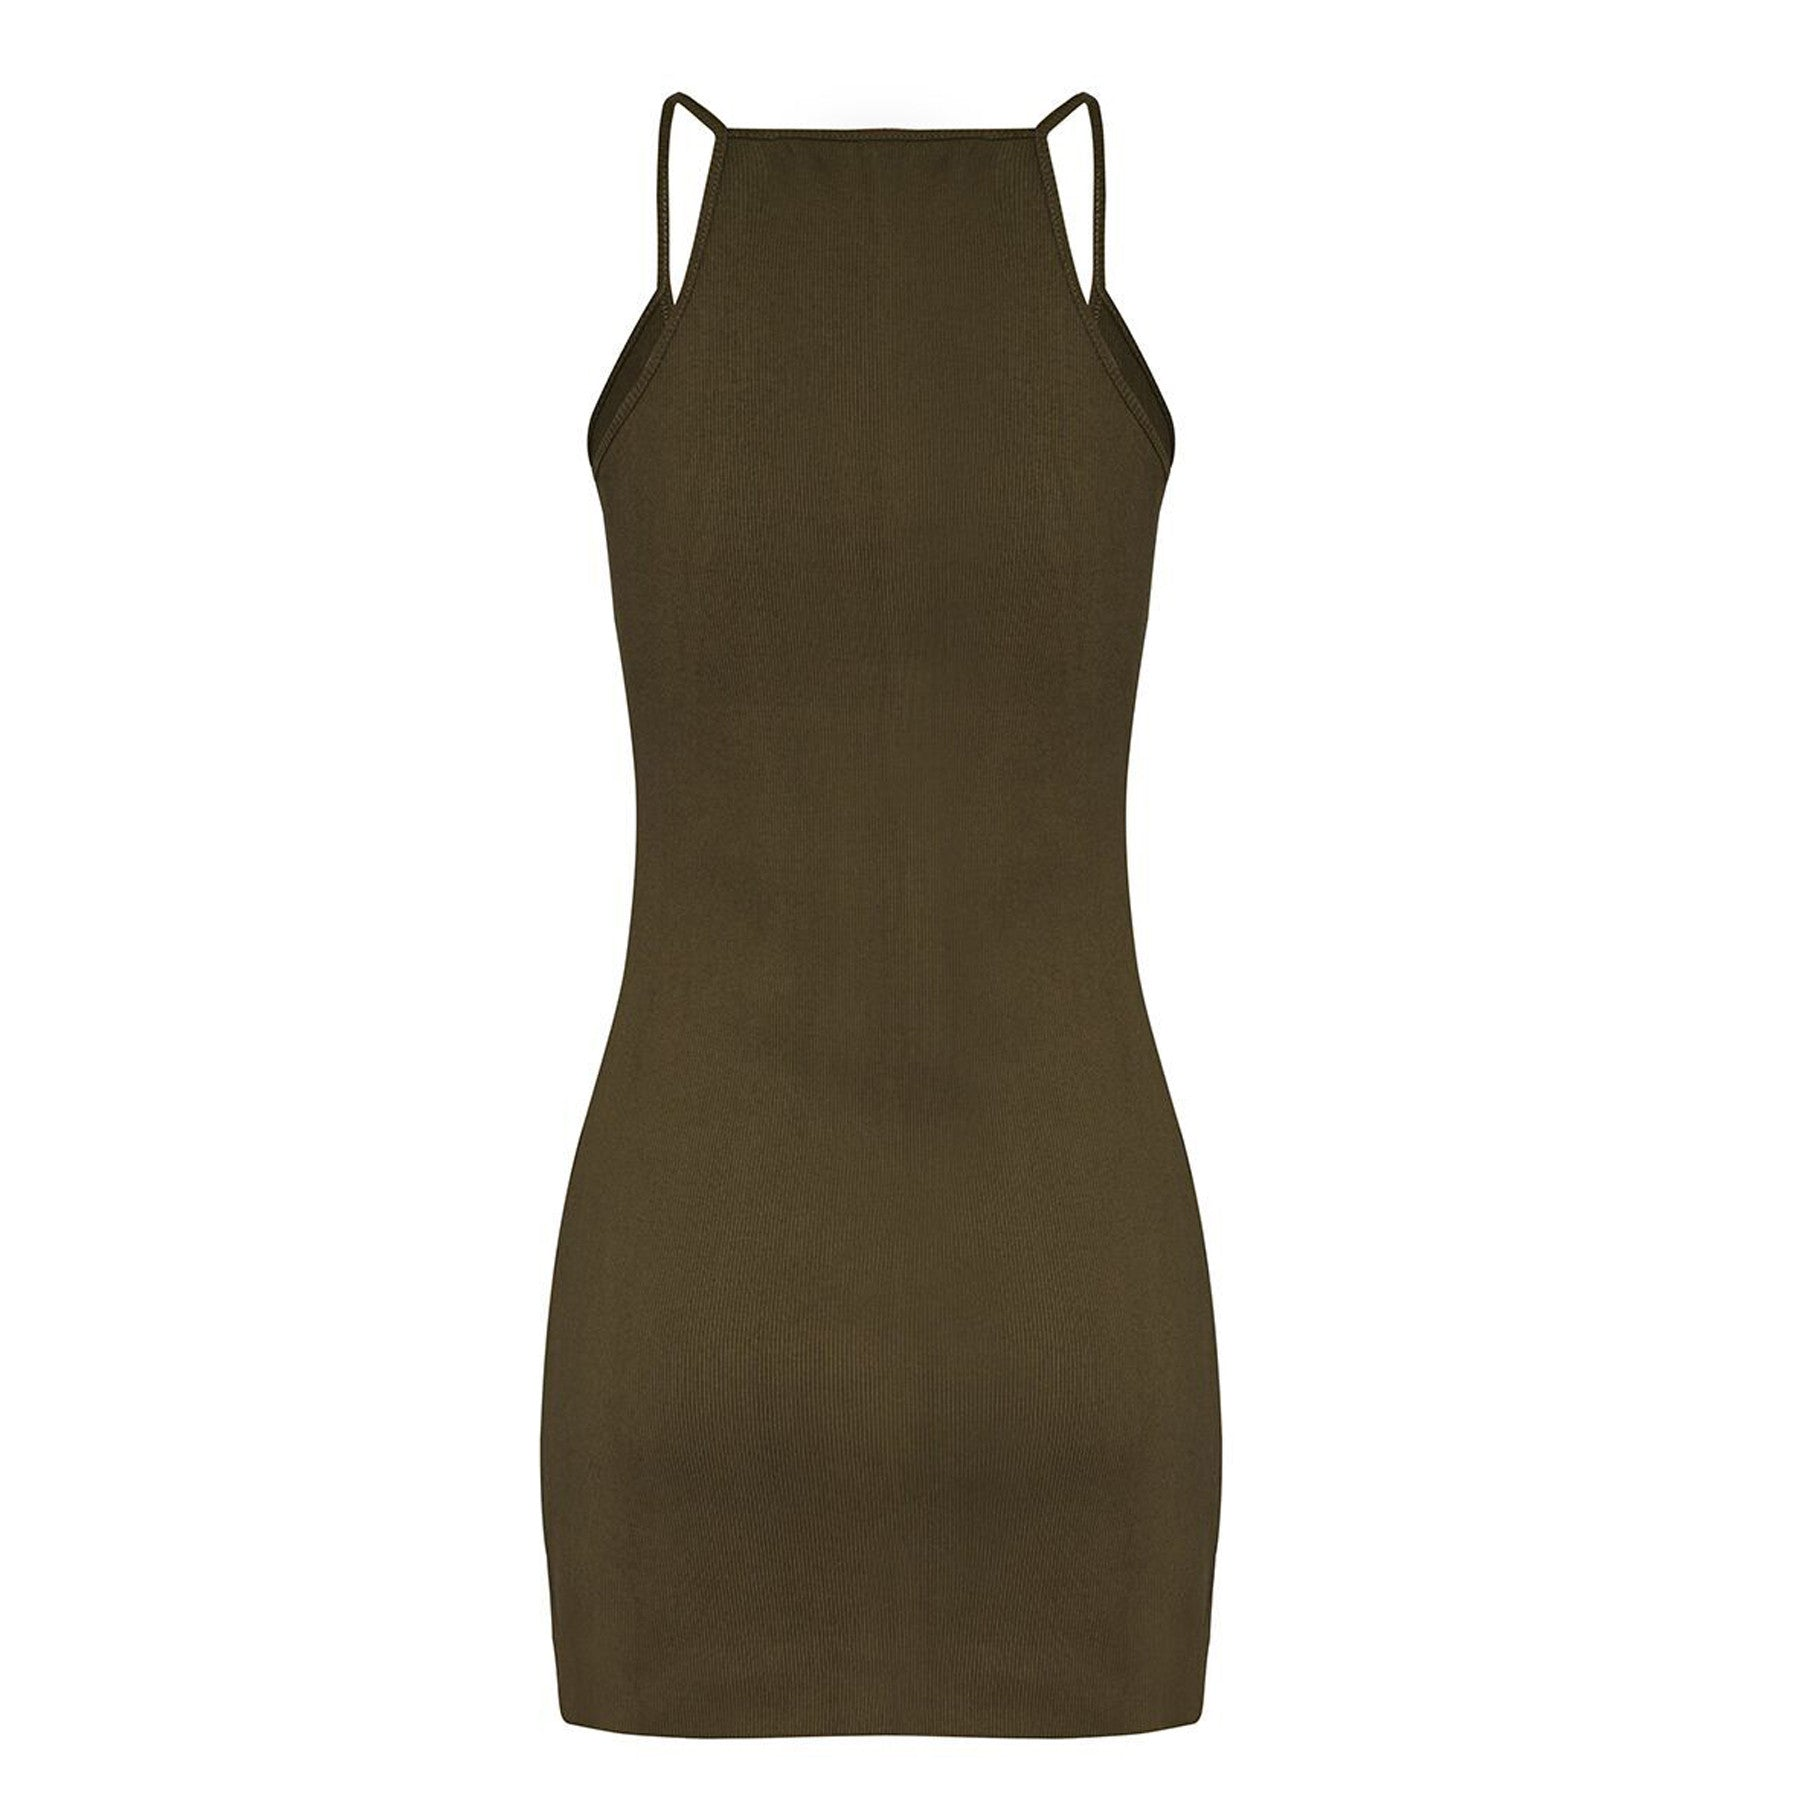 Les Essentials Rib Dress